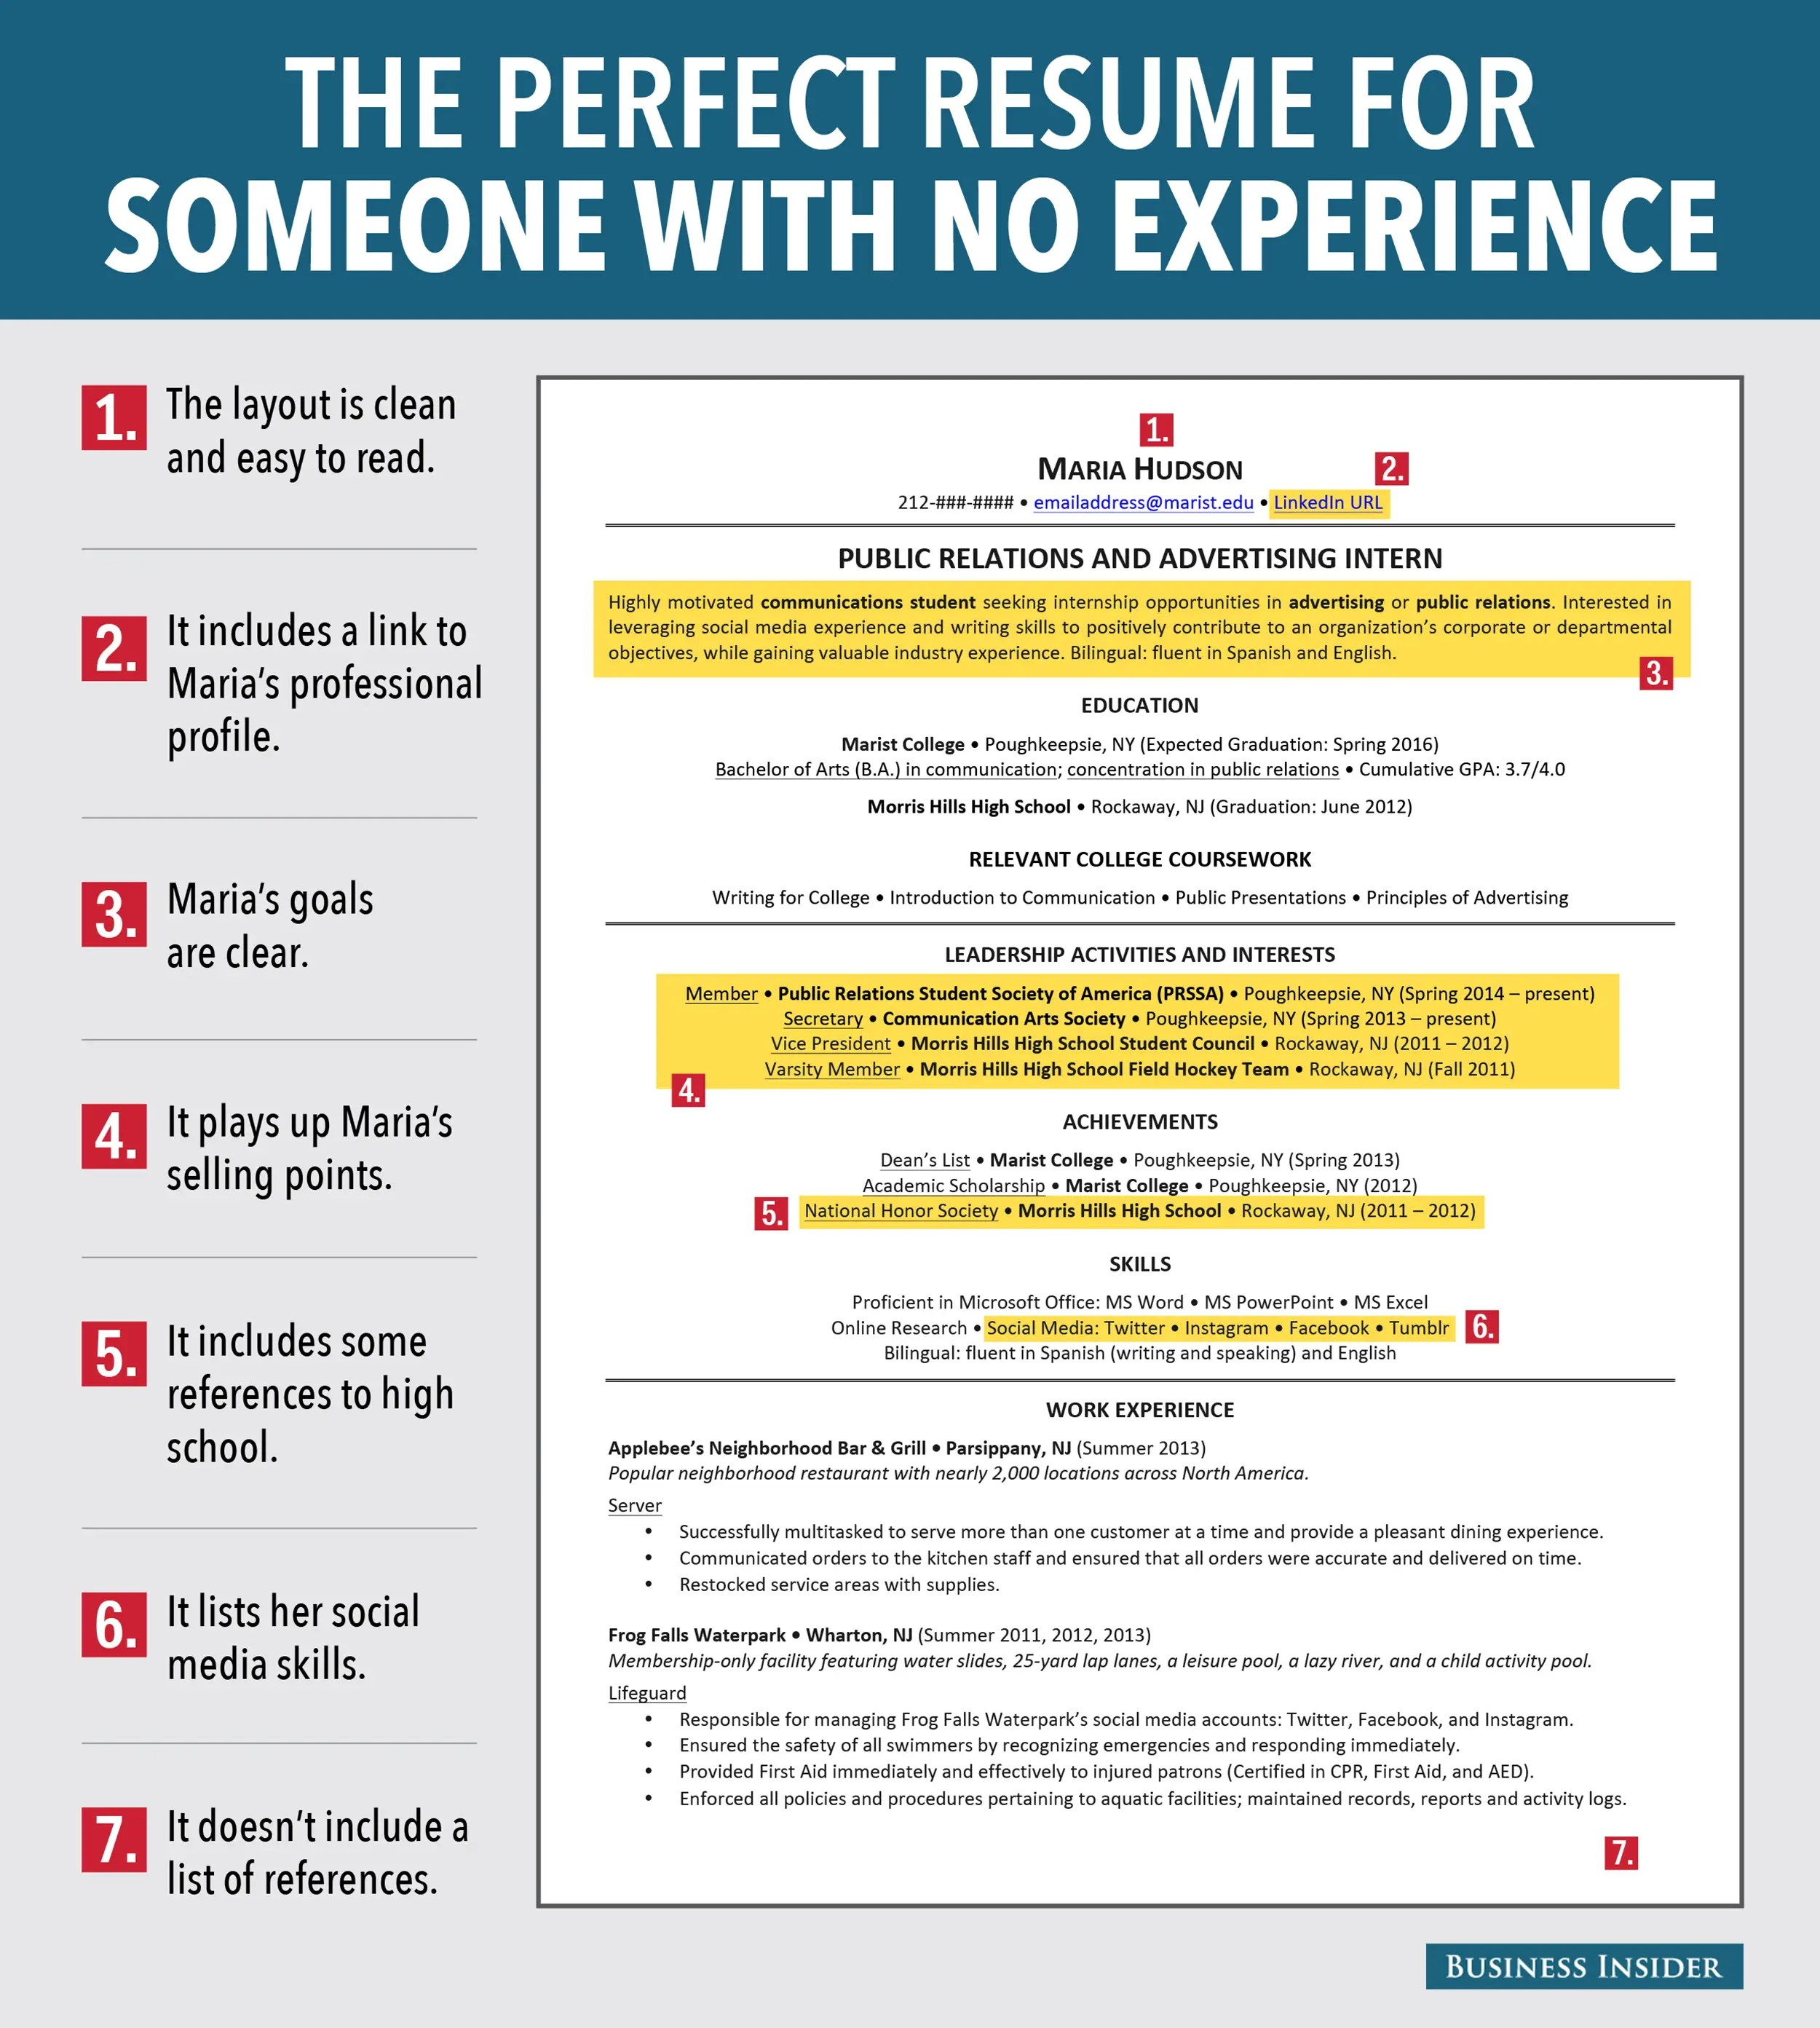 Experience In Resume 7 Reasons This Is An Excellent Resume For Someone With No